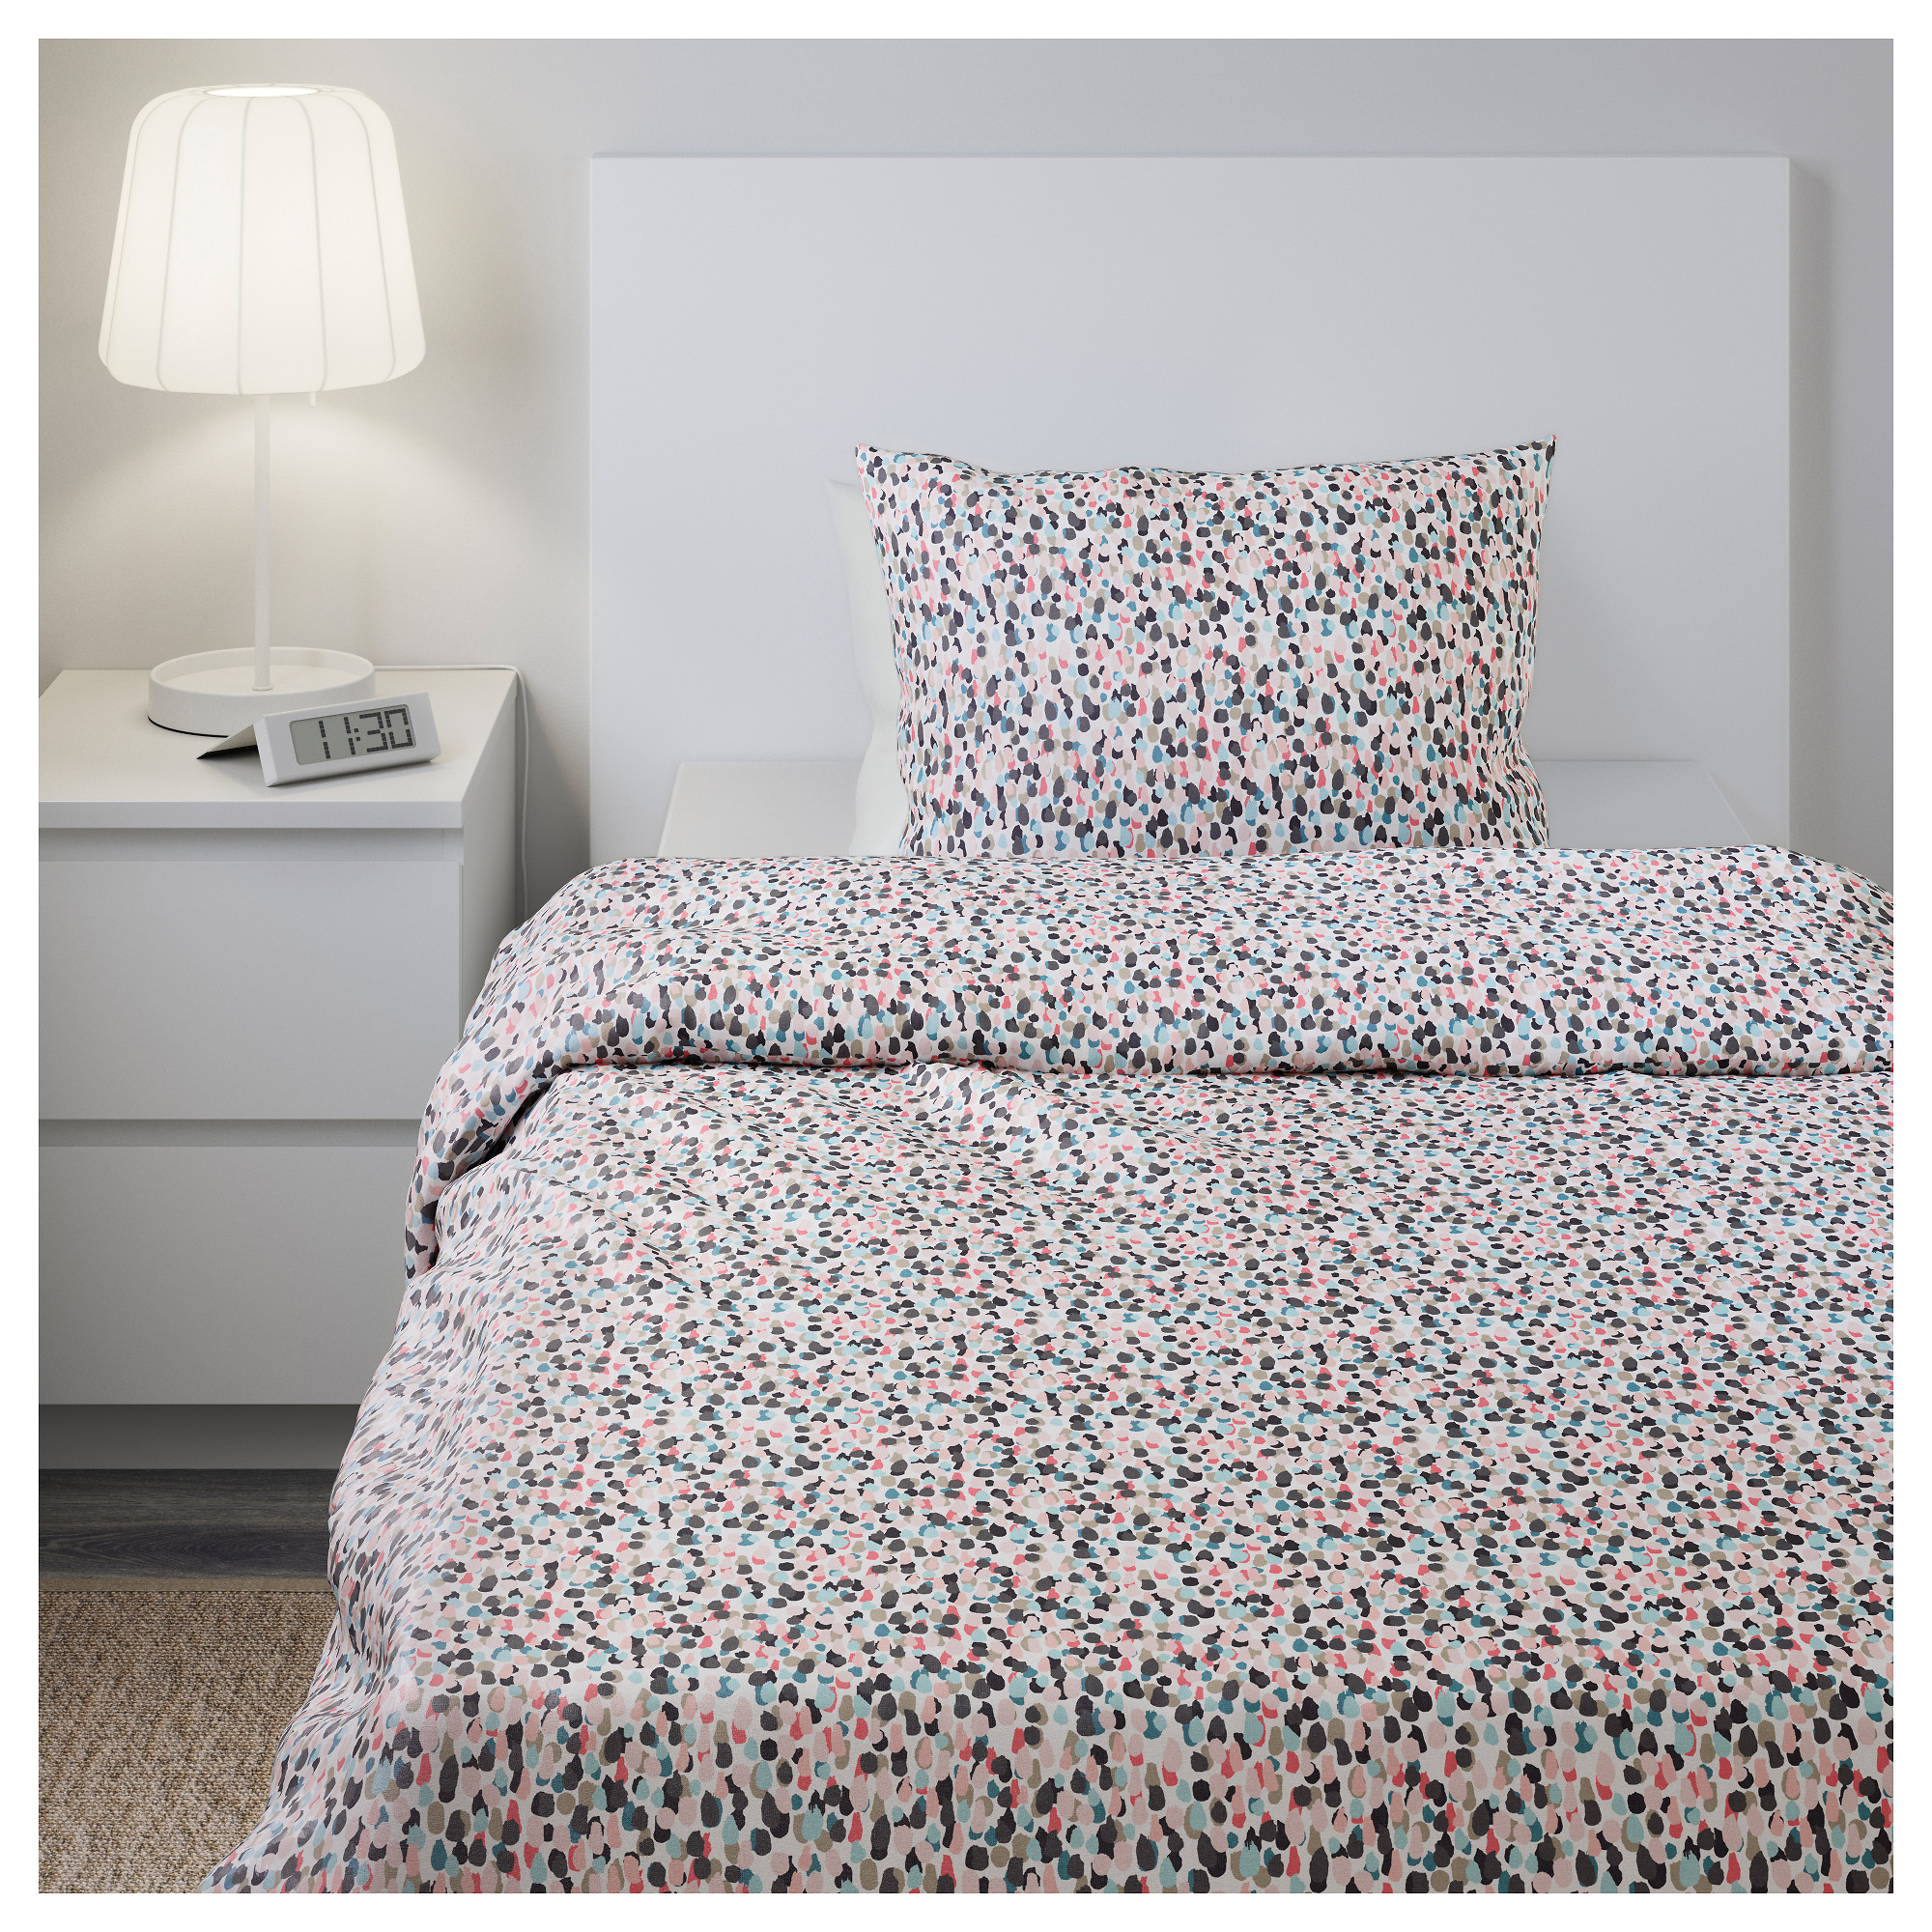 diy of target grey cov southwest illustrious covers inspirational ikea cove twin queen bed bedding cover with beautiful in down dorm comforters sheets comforter am full the king cheap xl and duvet dreamiest insert size pintuck create ideas